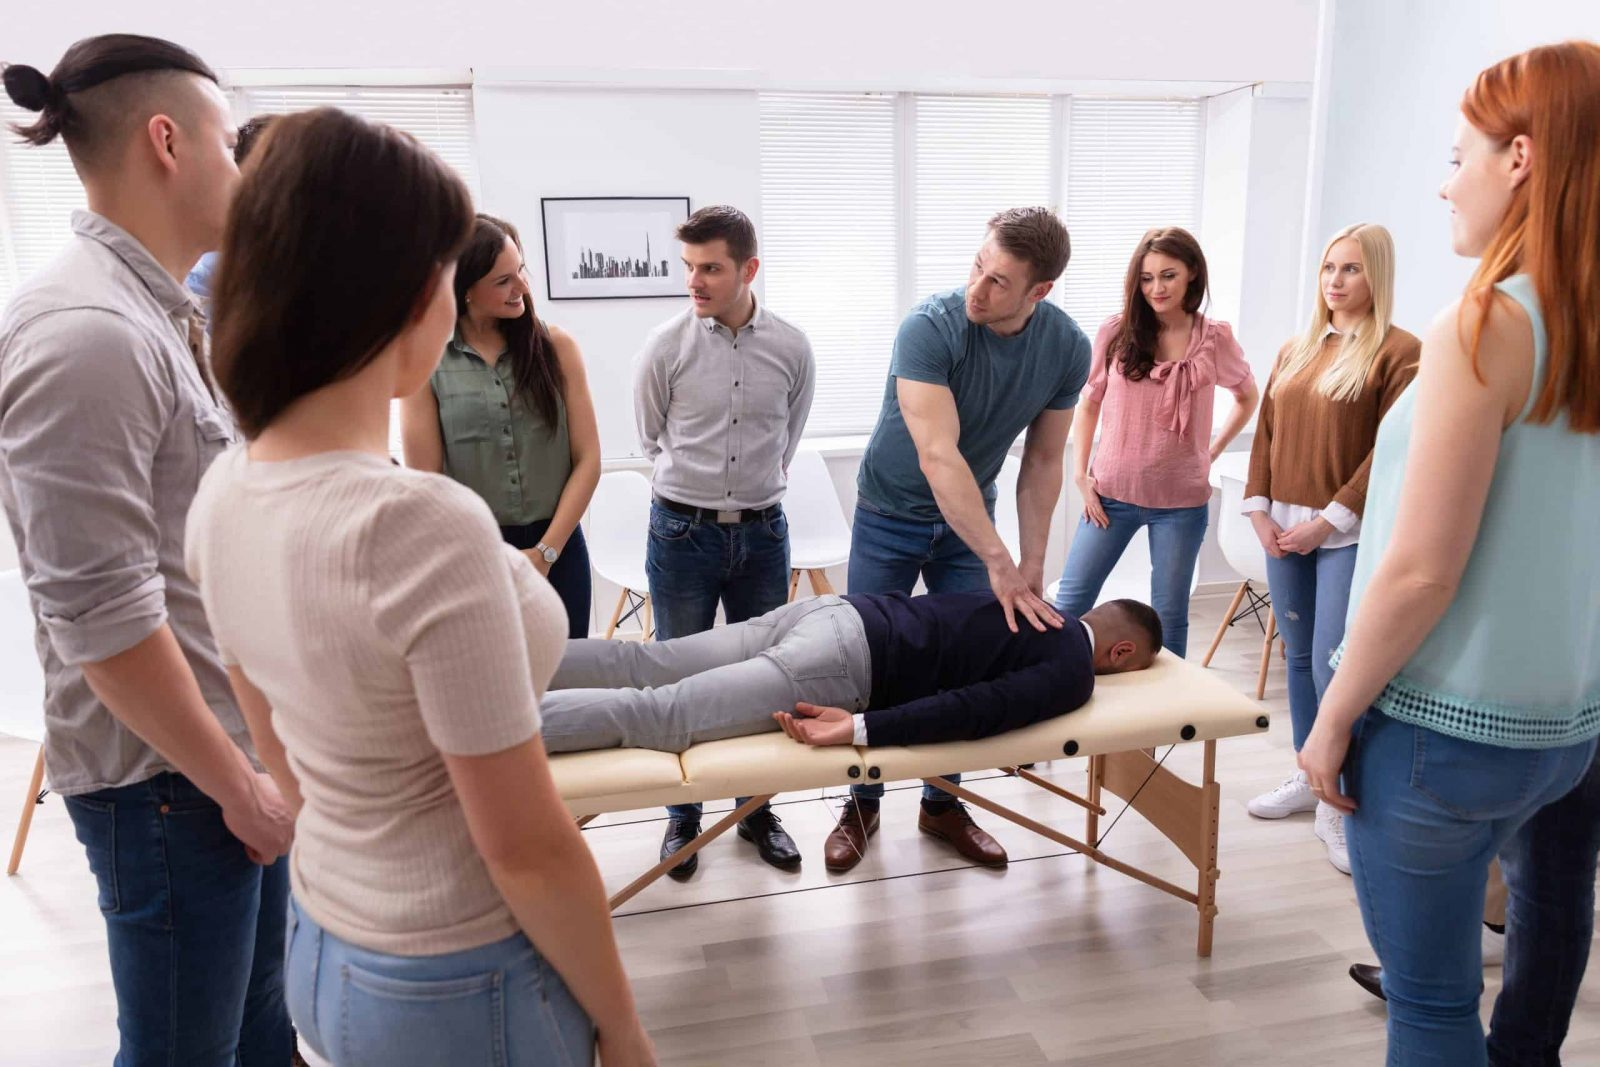 What Kinds of Jobs Can a Massage Therapist Do?